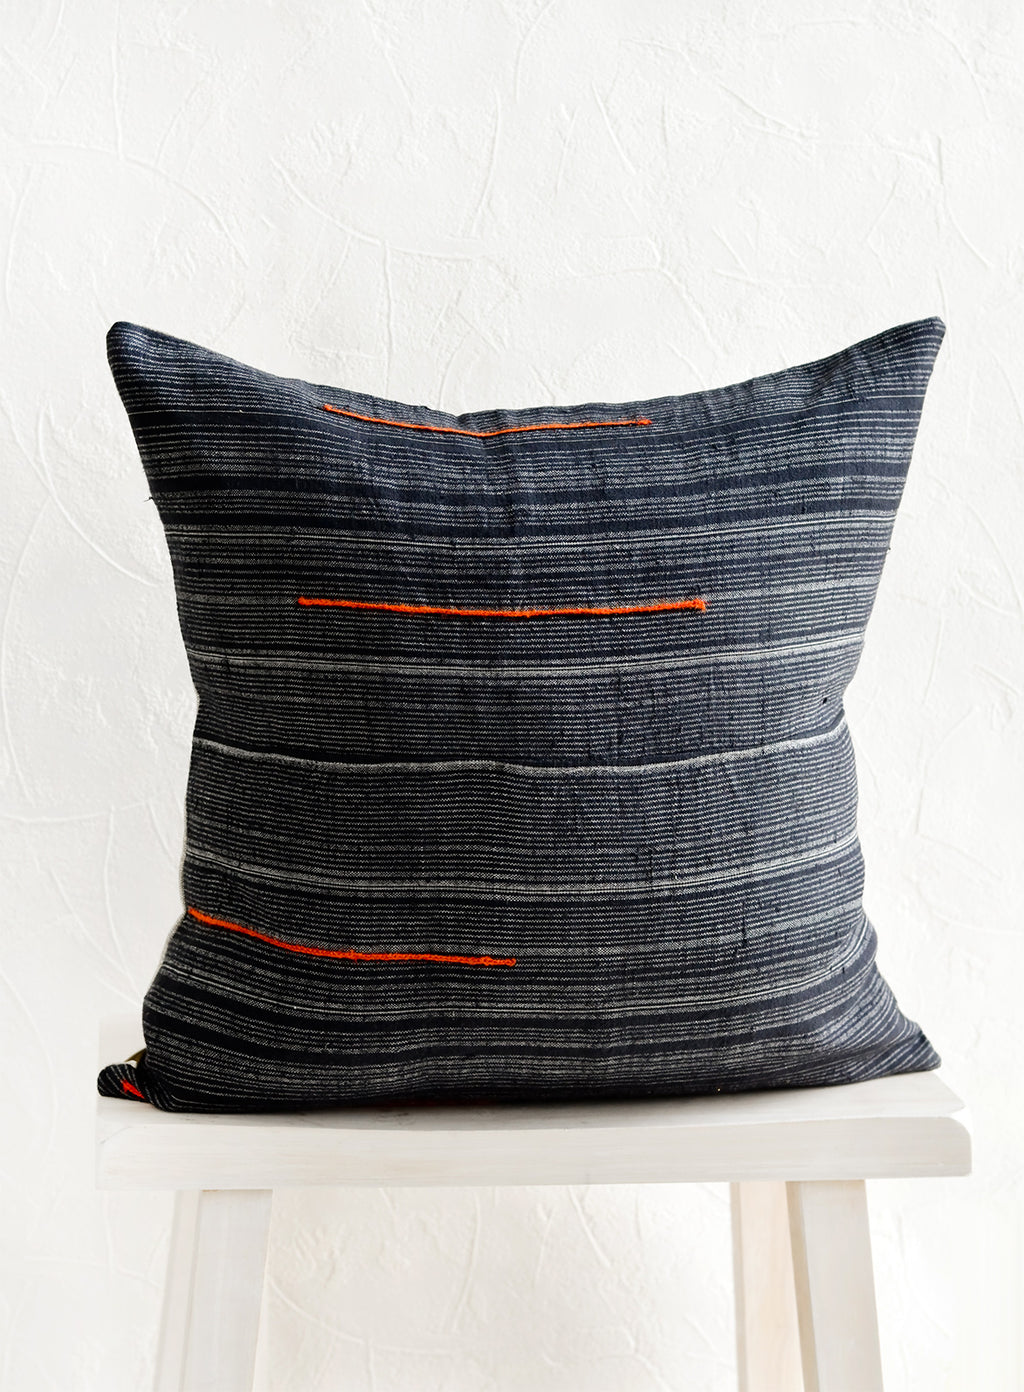 2: A square throw pillow made from dark blue fabric with grey stripes and embroidered orange lines.